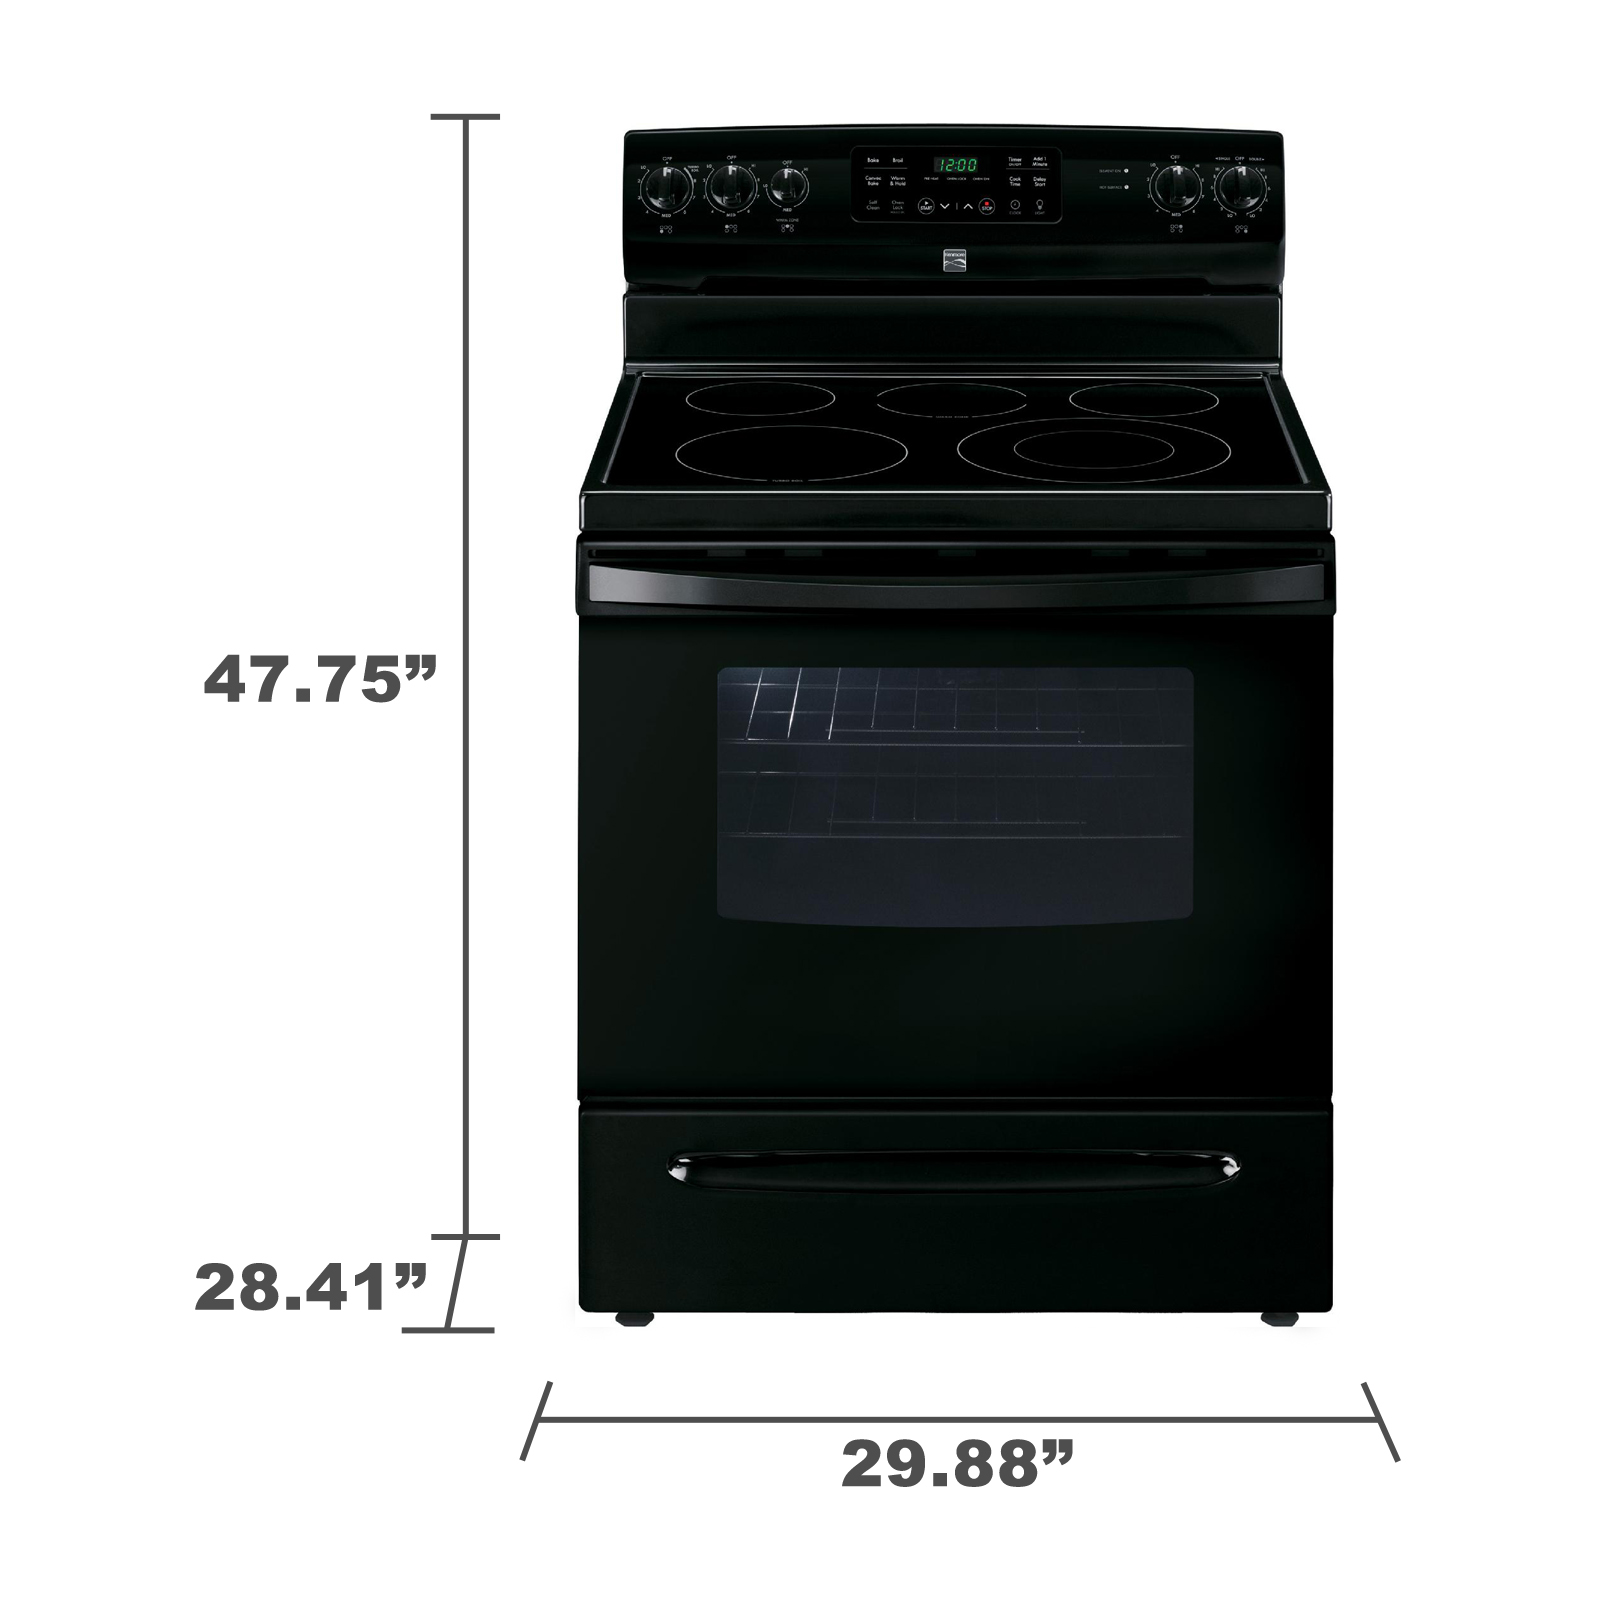 Kenmore 94199 5.4 cu. ft. Electric Range w/ Convection Oven - Black